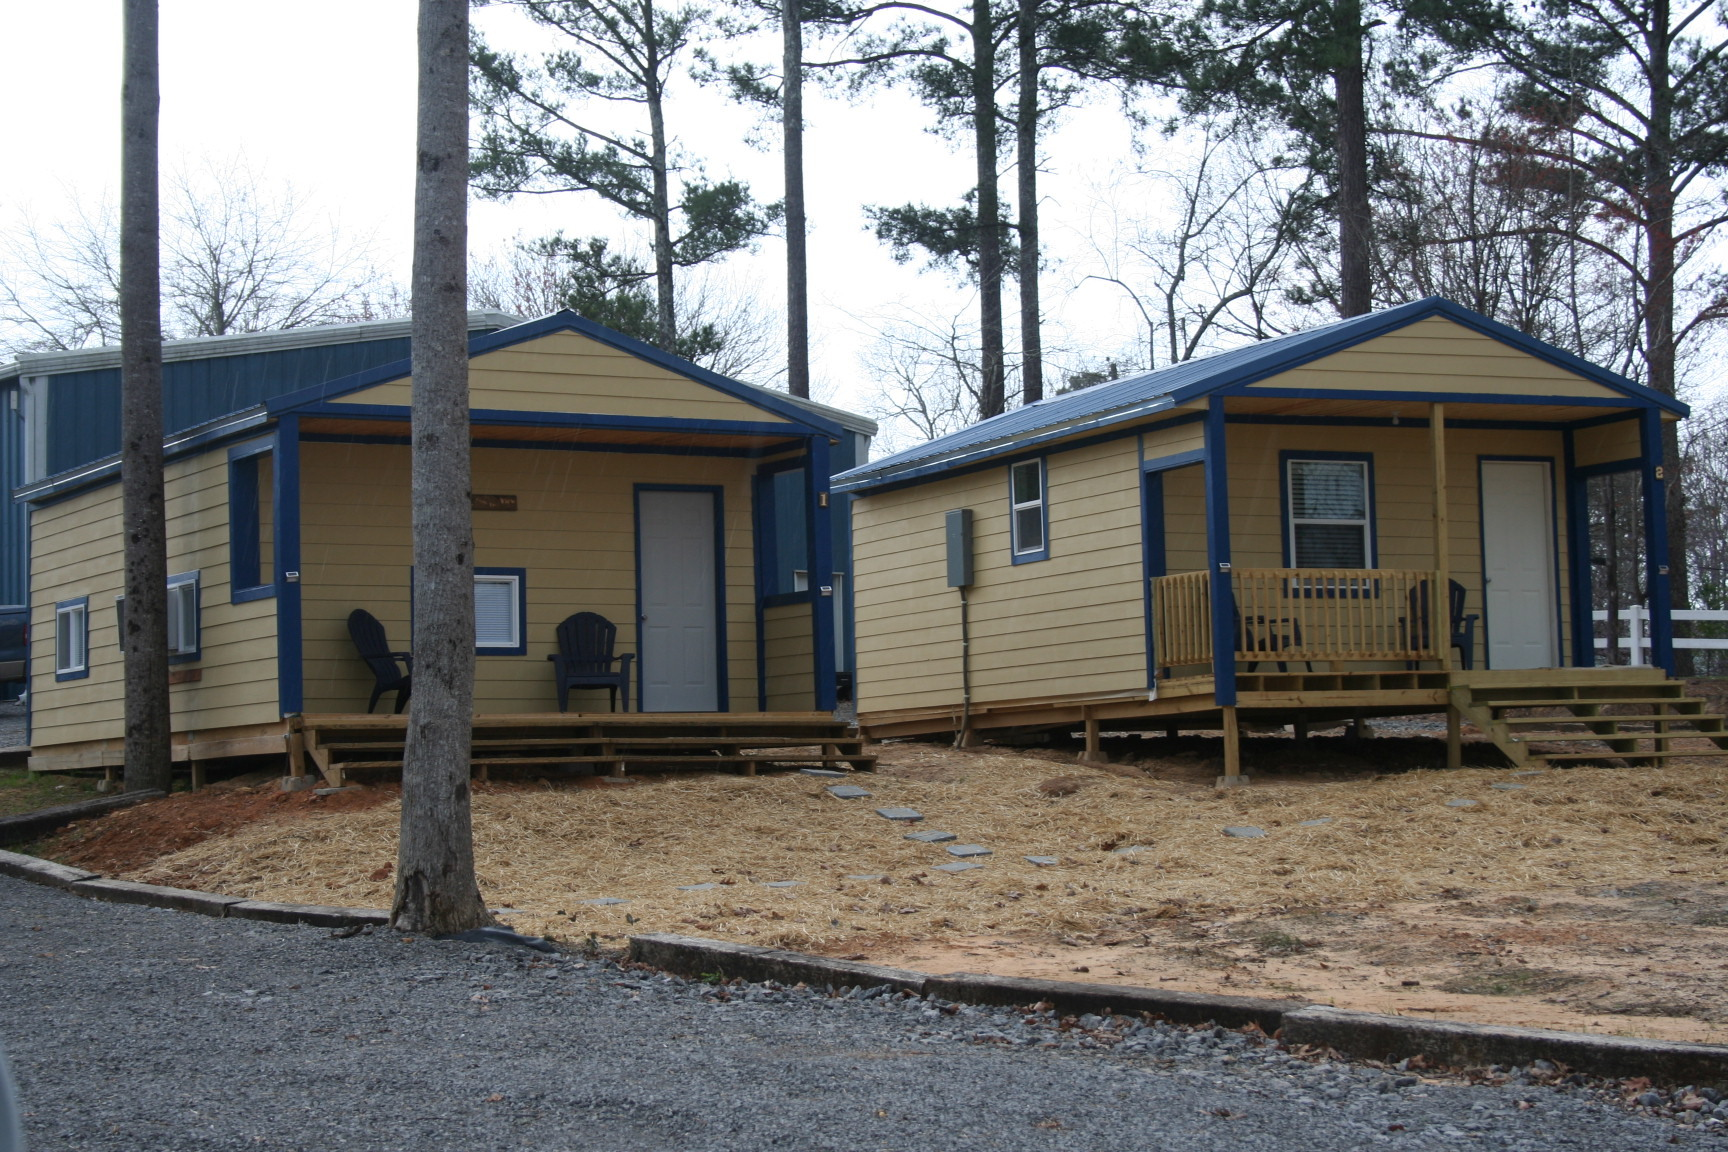 Cabins #1 and #2